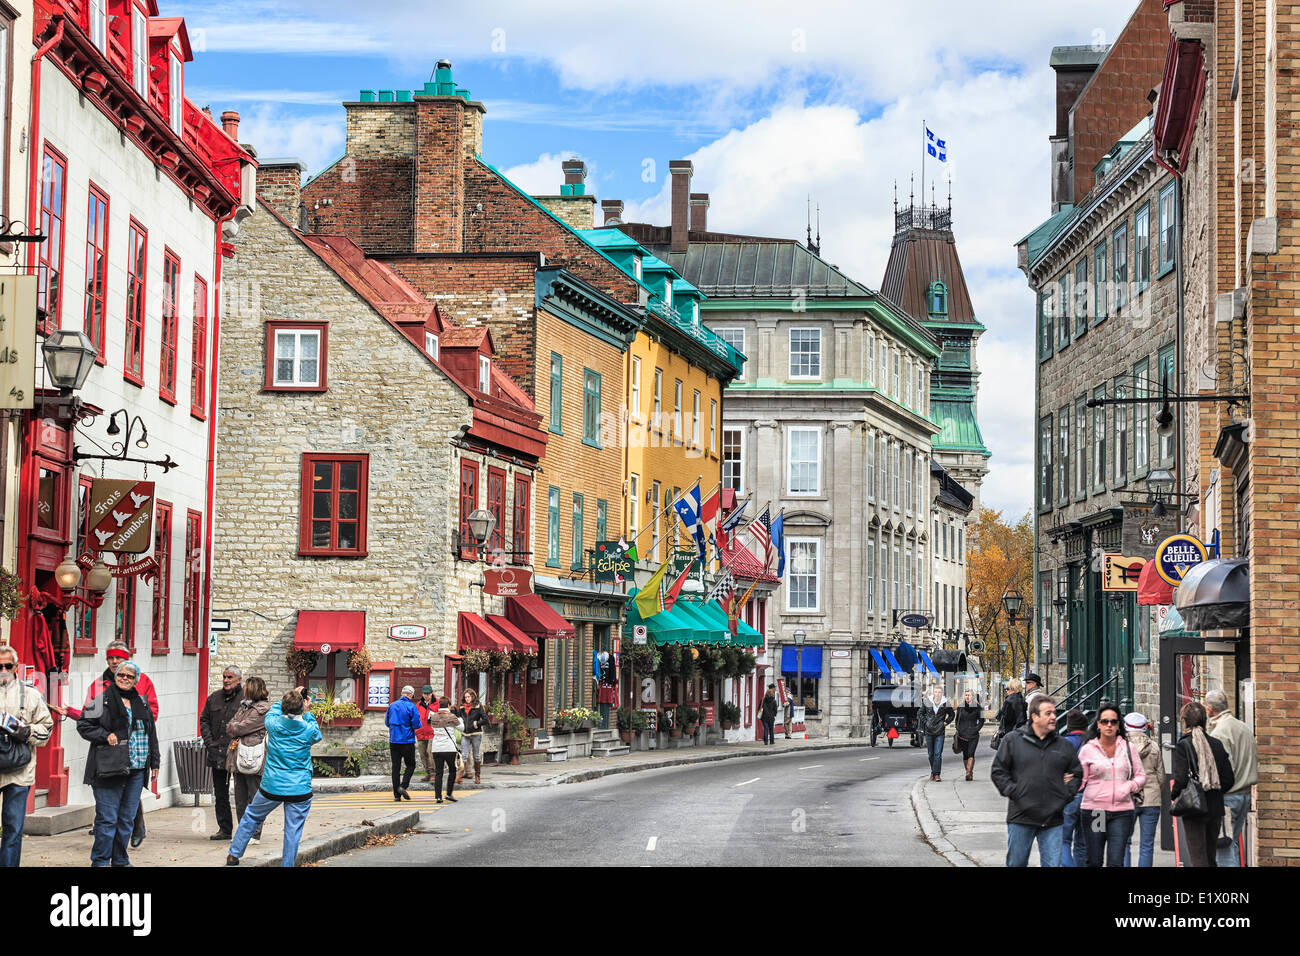 Rue Saint-Louis in the Upper Town area of historic Old Quebec, Quebec City, Quebec, Canada - Stock Image